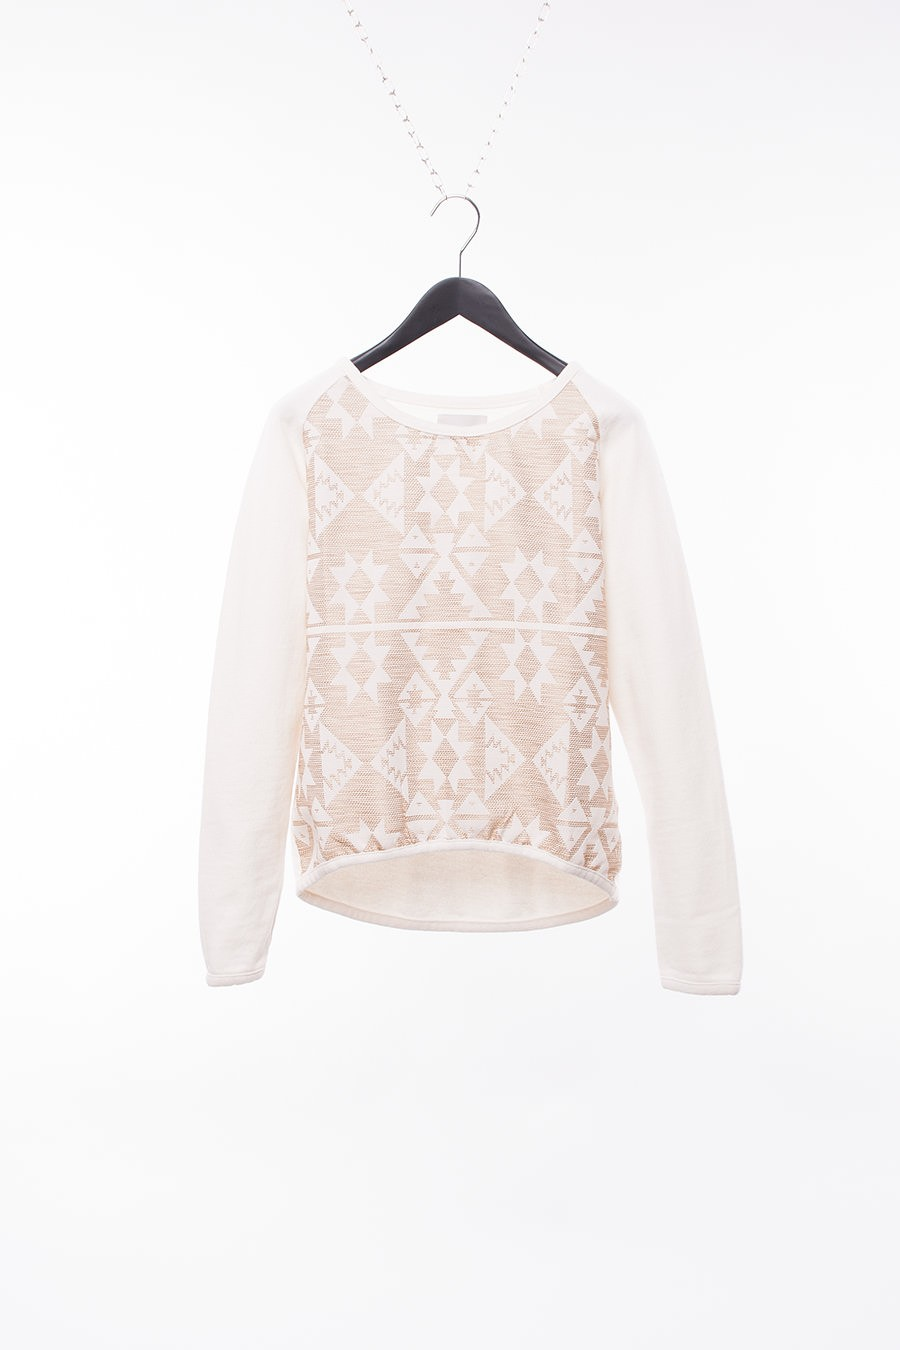 Prim I Am - Lot  Off White